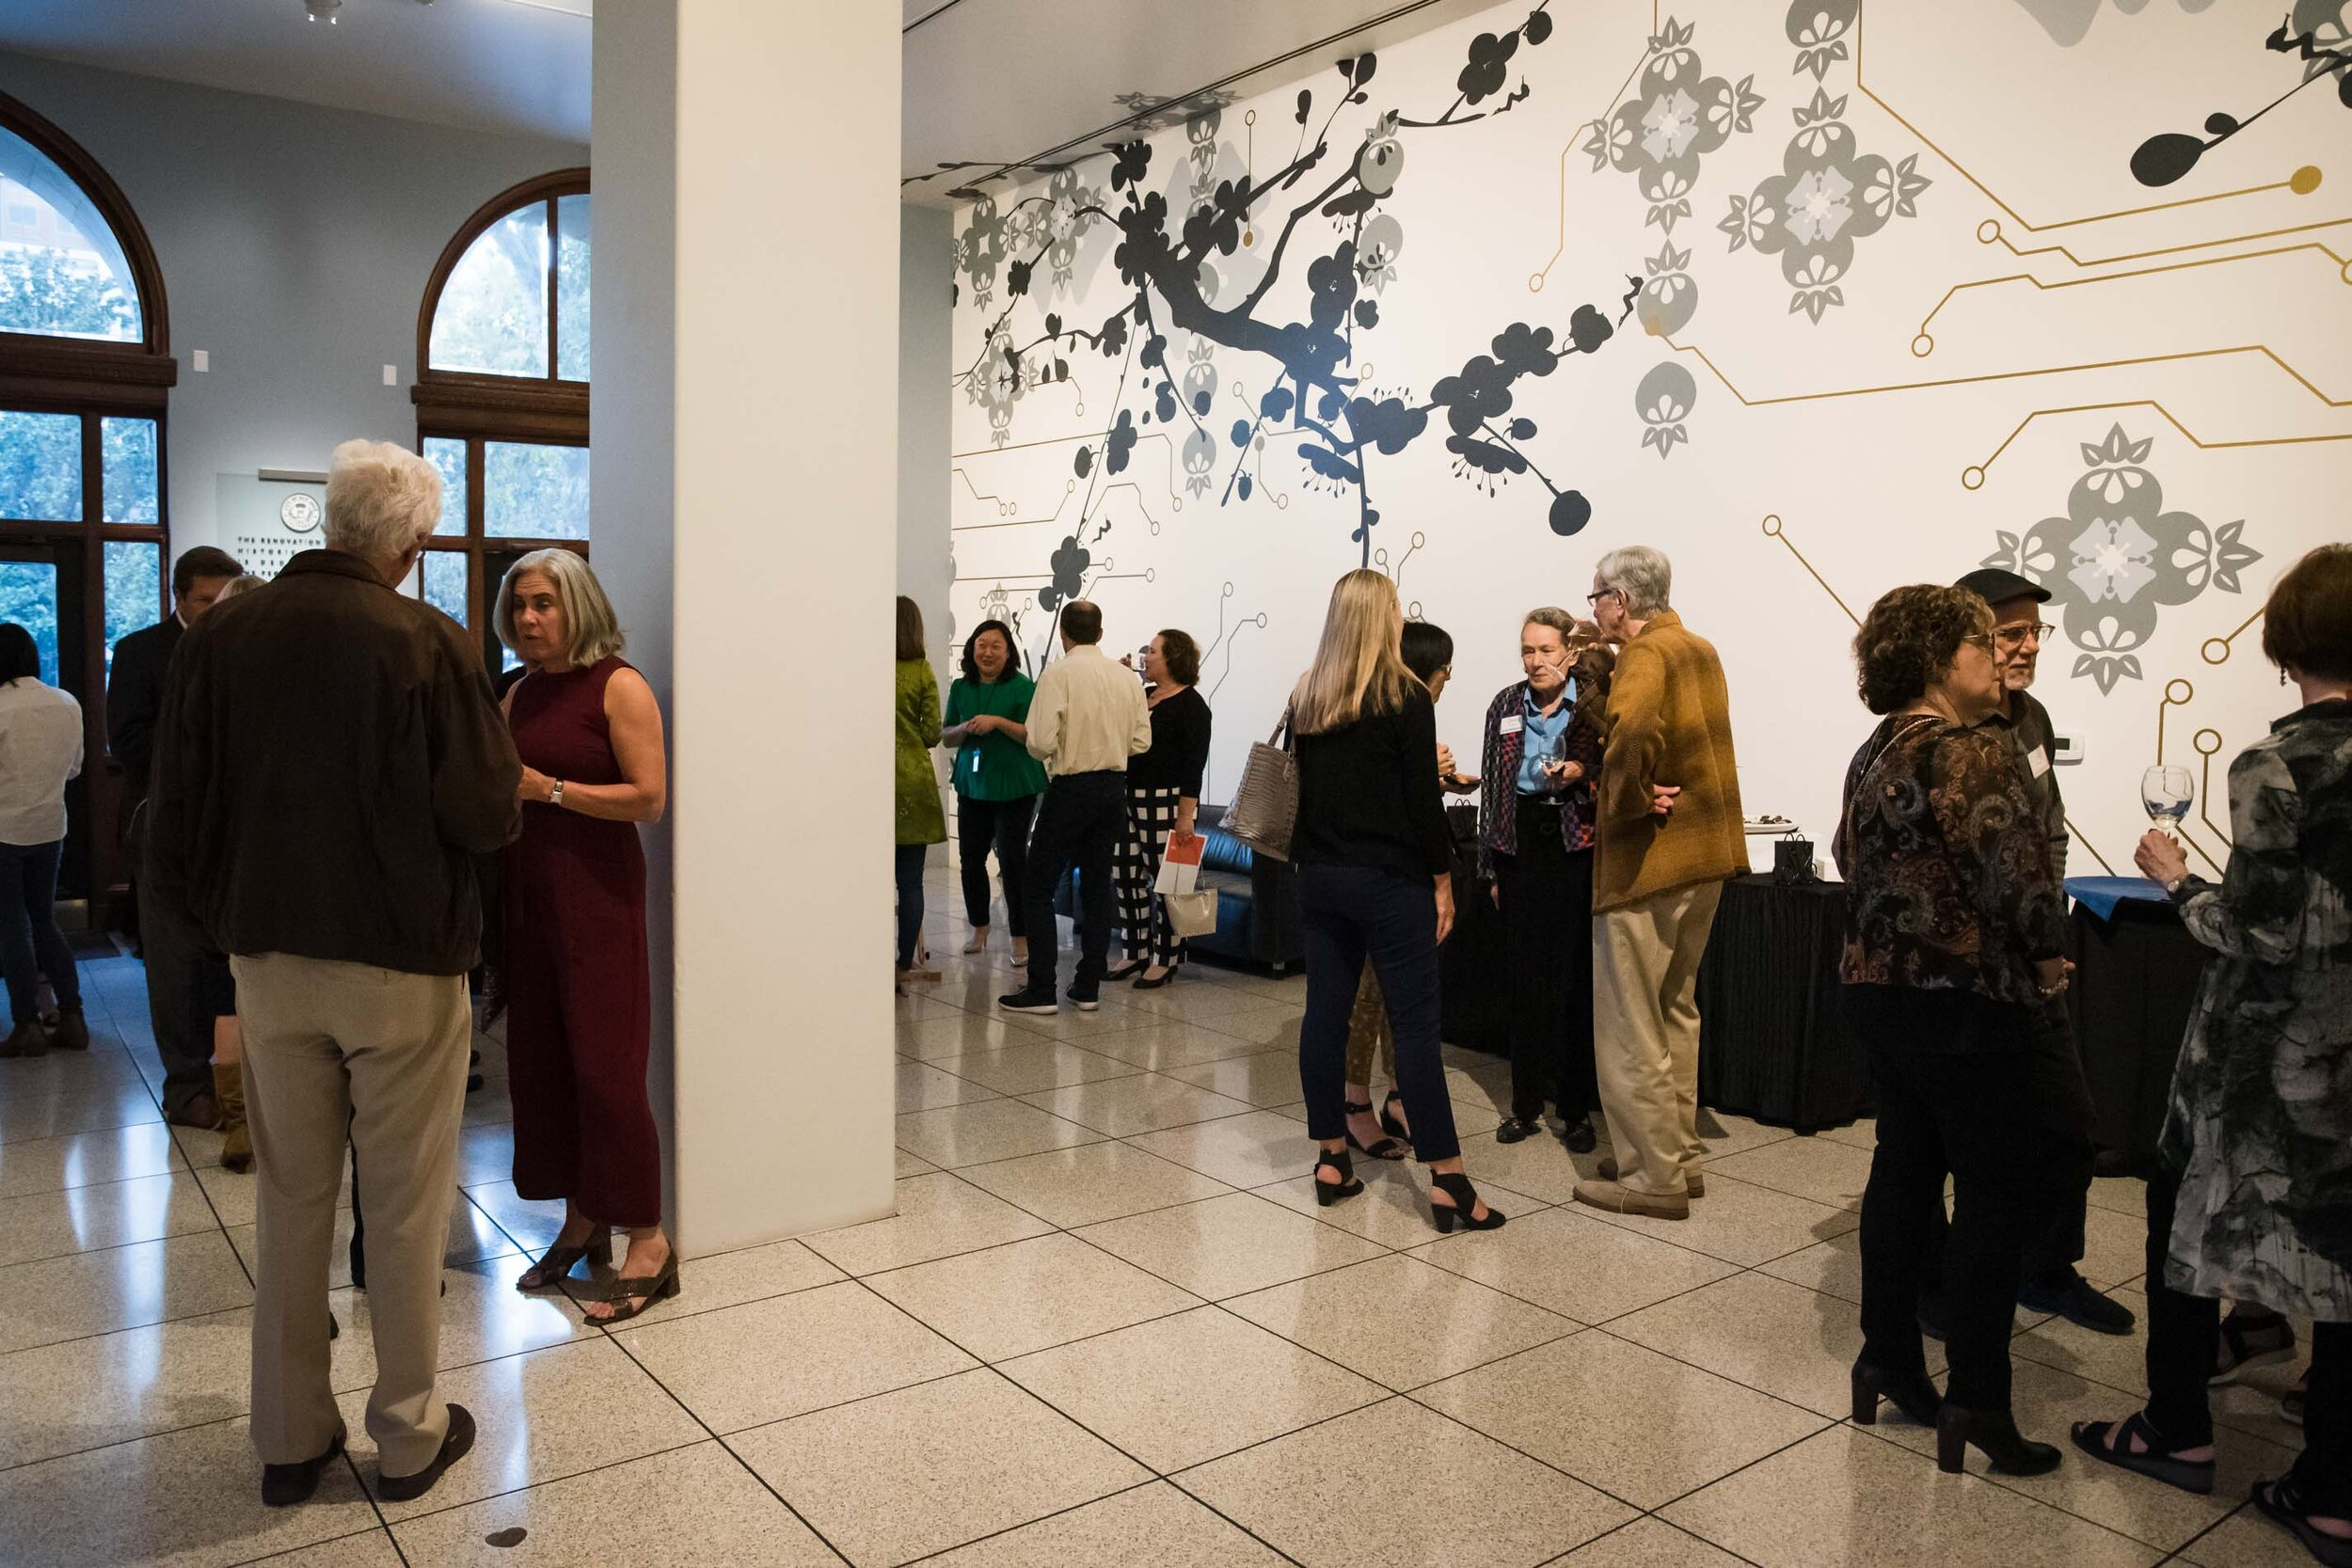 69_GalaAuctionPreview_9.16.19_photo_SharonKenney.jpg